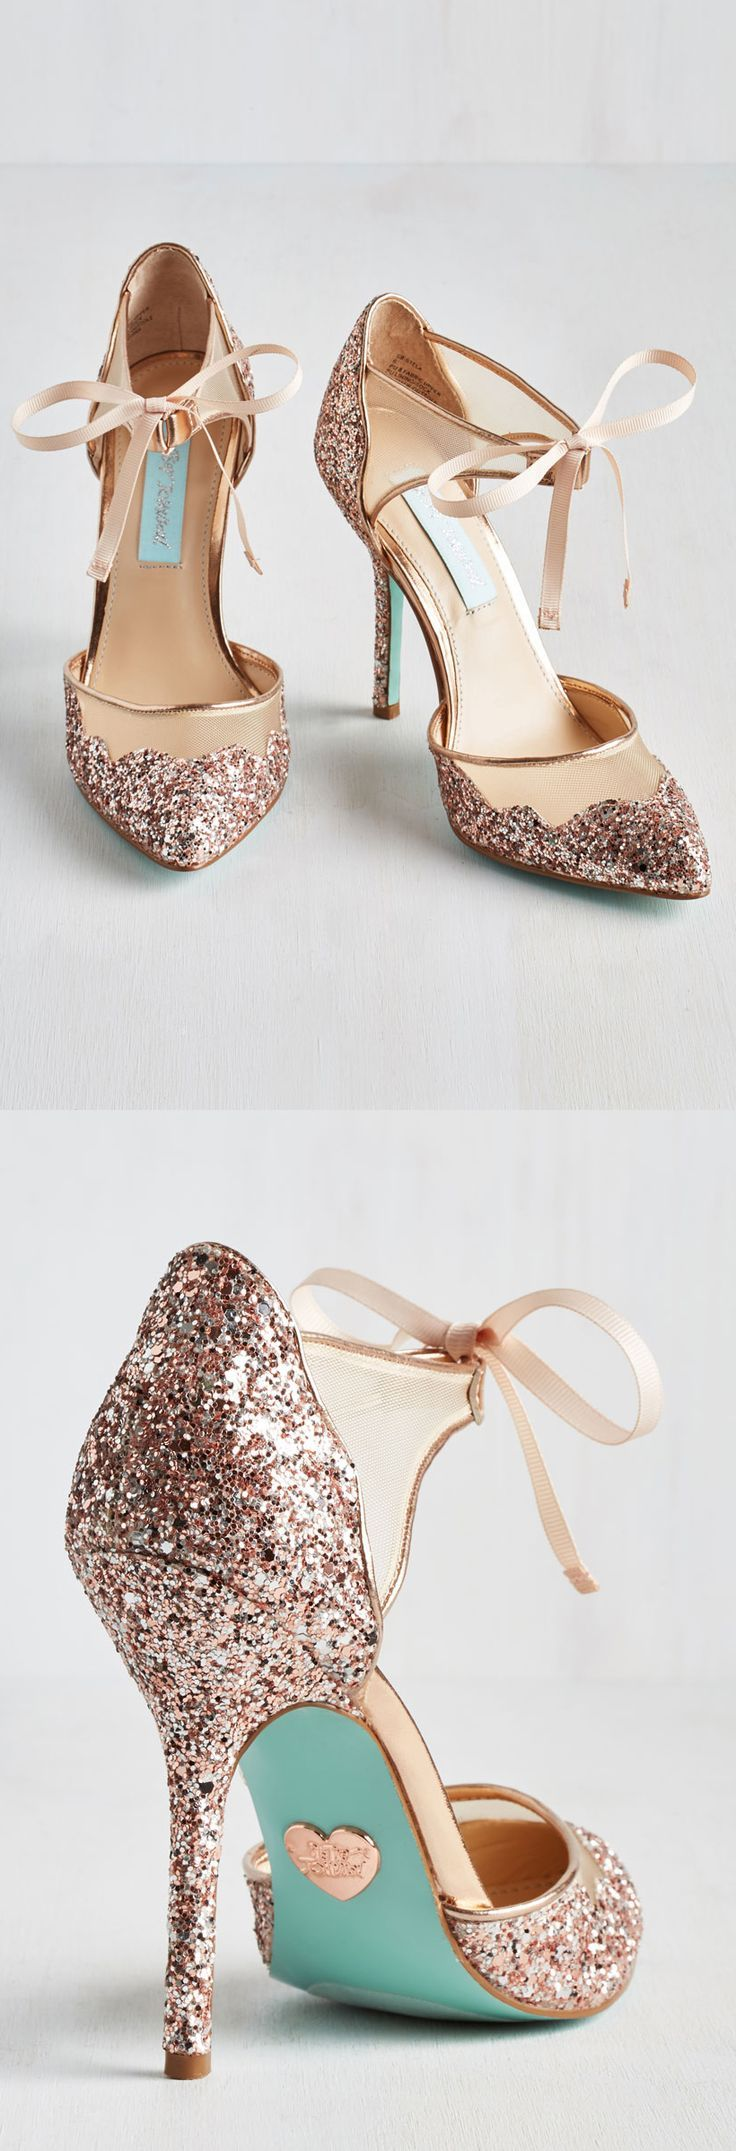 betsey johnson wedding shoes 15 Amazing Gift Ideas for Her